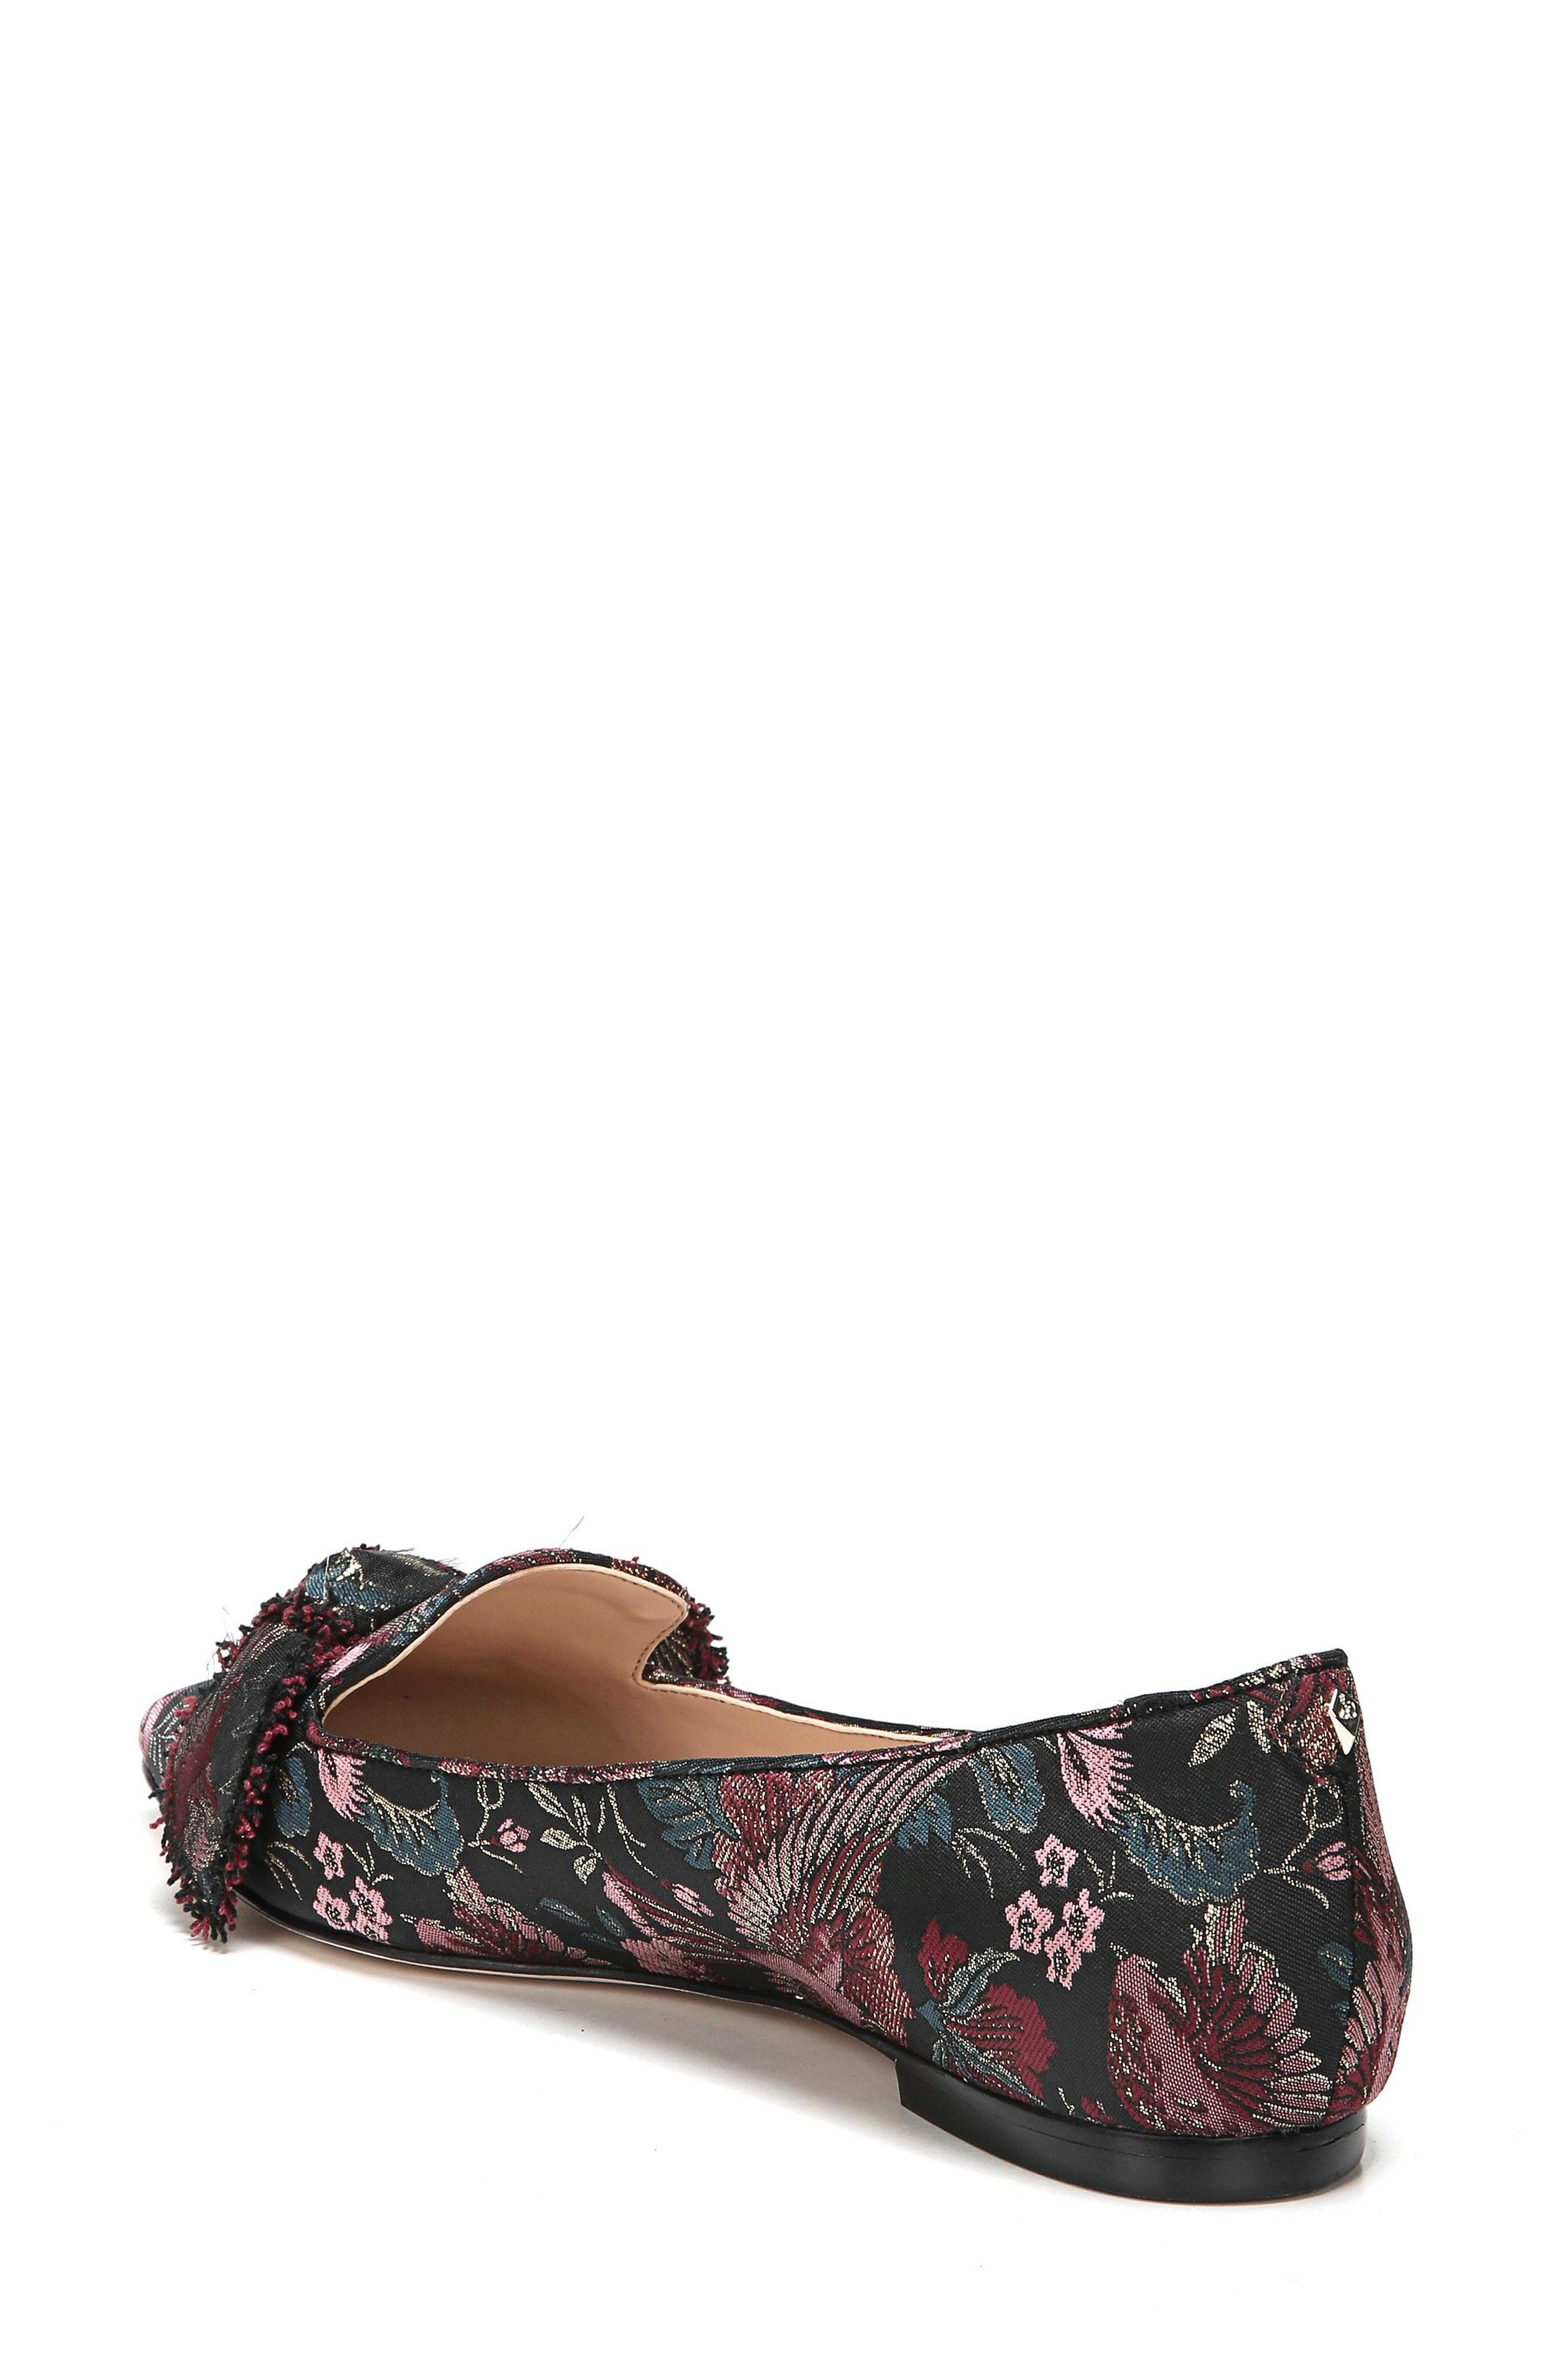 Rochester Bow Pointy Toe Flat,                             Alternate thumbnail 2, color,                             002